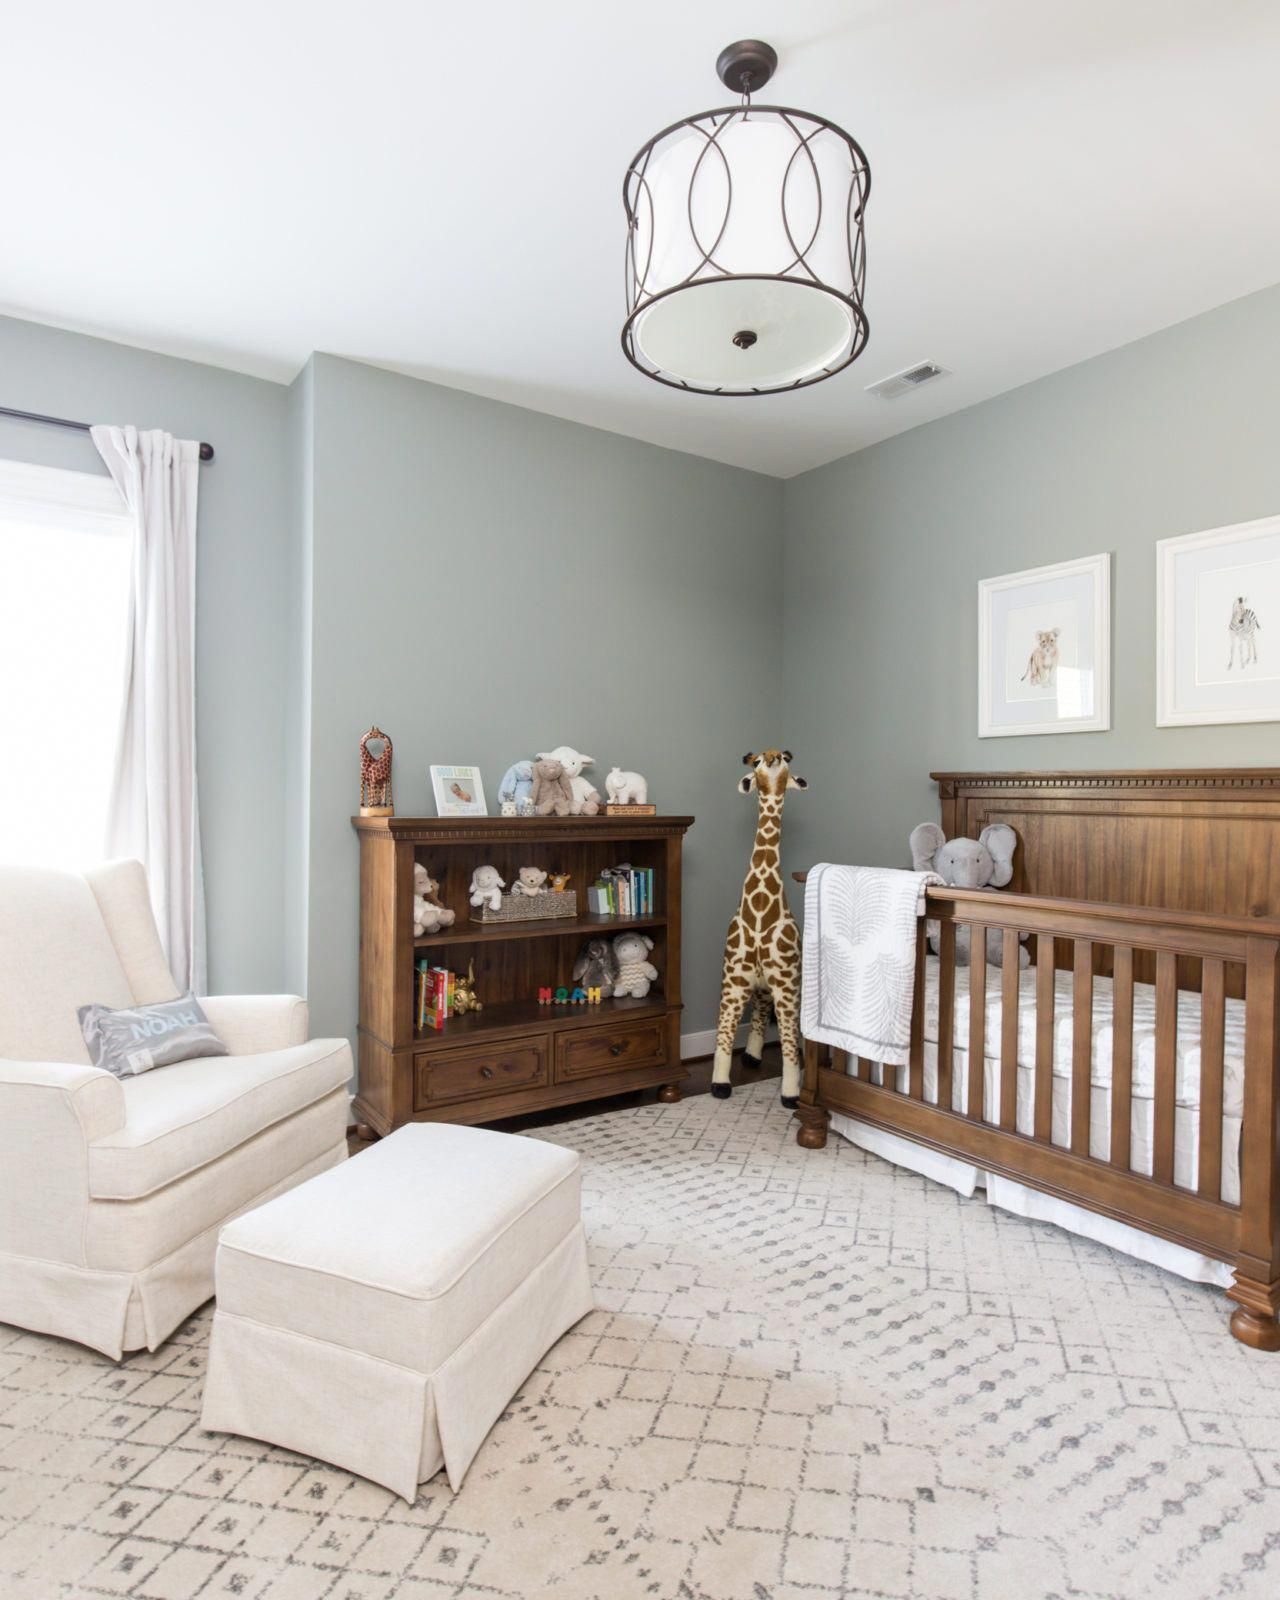 Outstanding Baby Arrival Info Are Available On Our Website Check It Out And You Wont Be Sorry You Did Baby Room Decor Nursery Paint Colors Nursery Baby Room